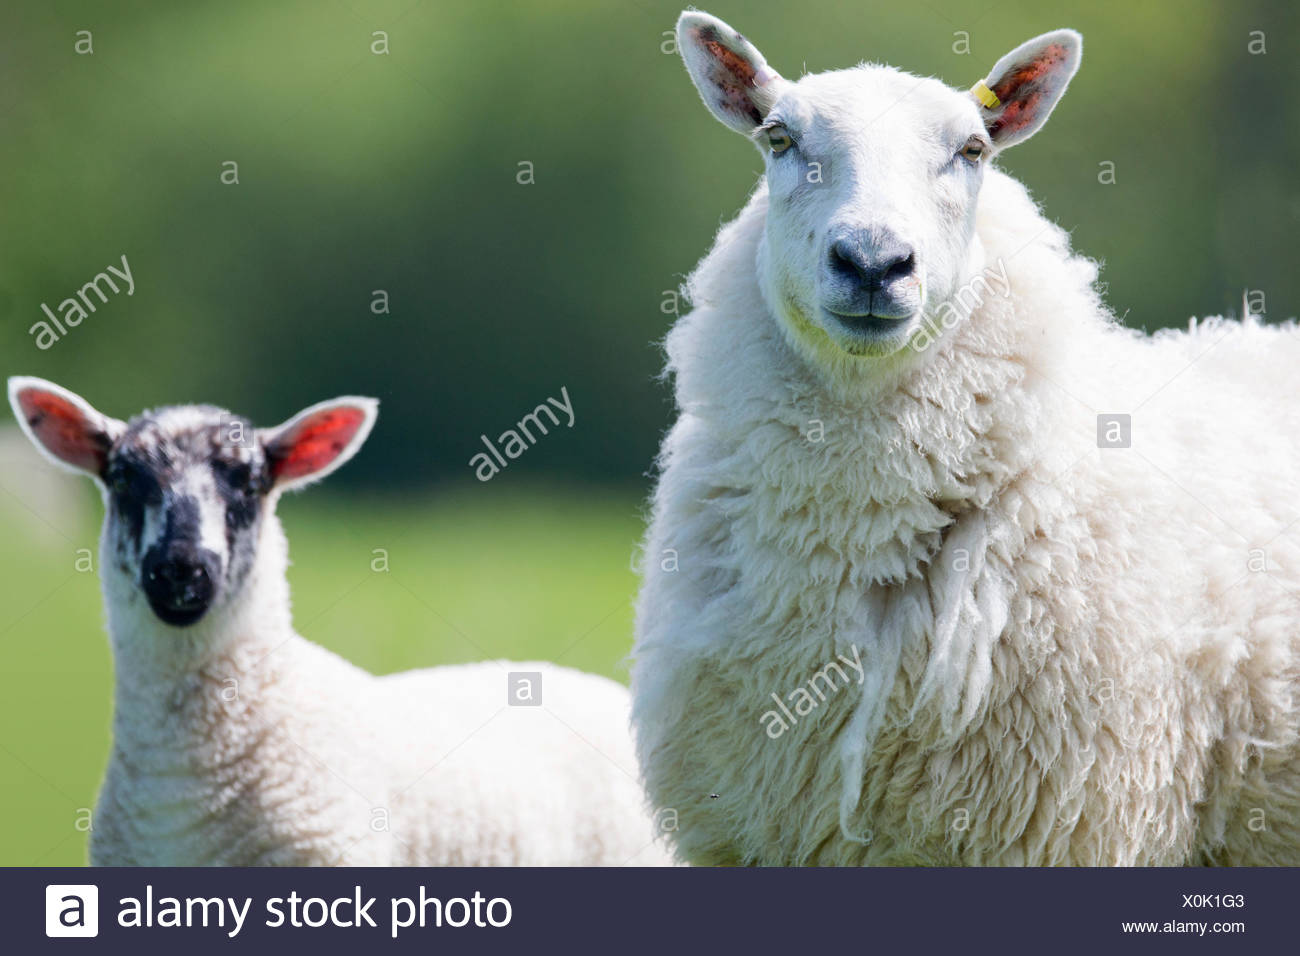 Close up portrait of sheep and lamb - Stock Image